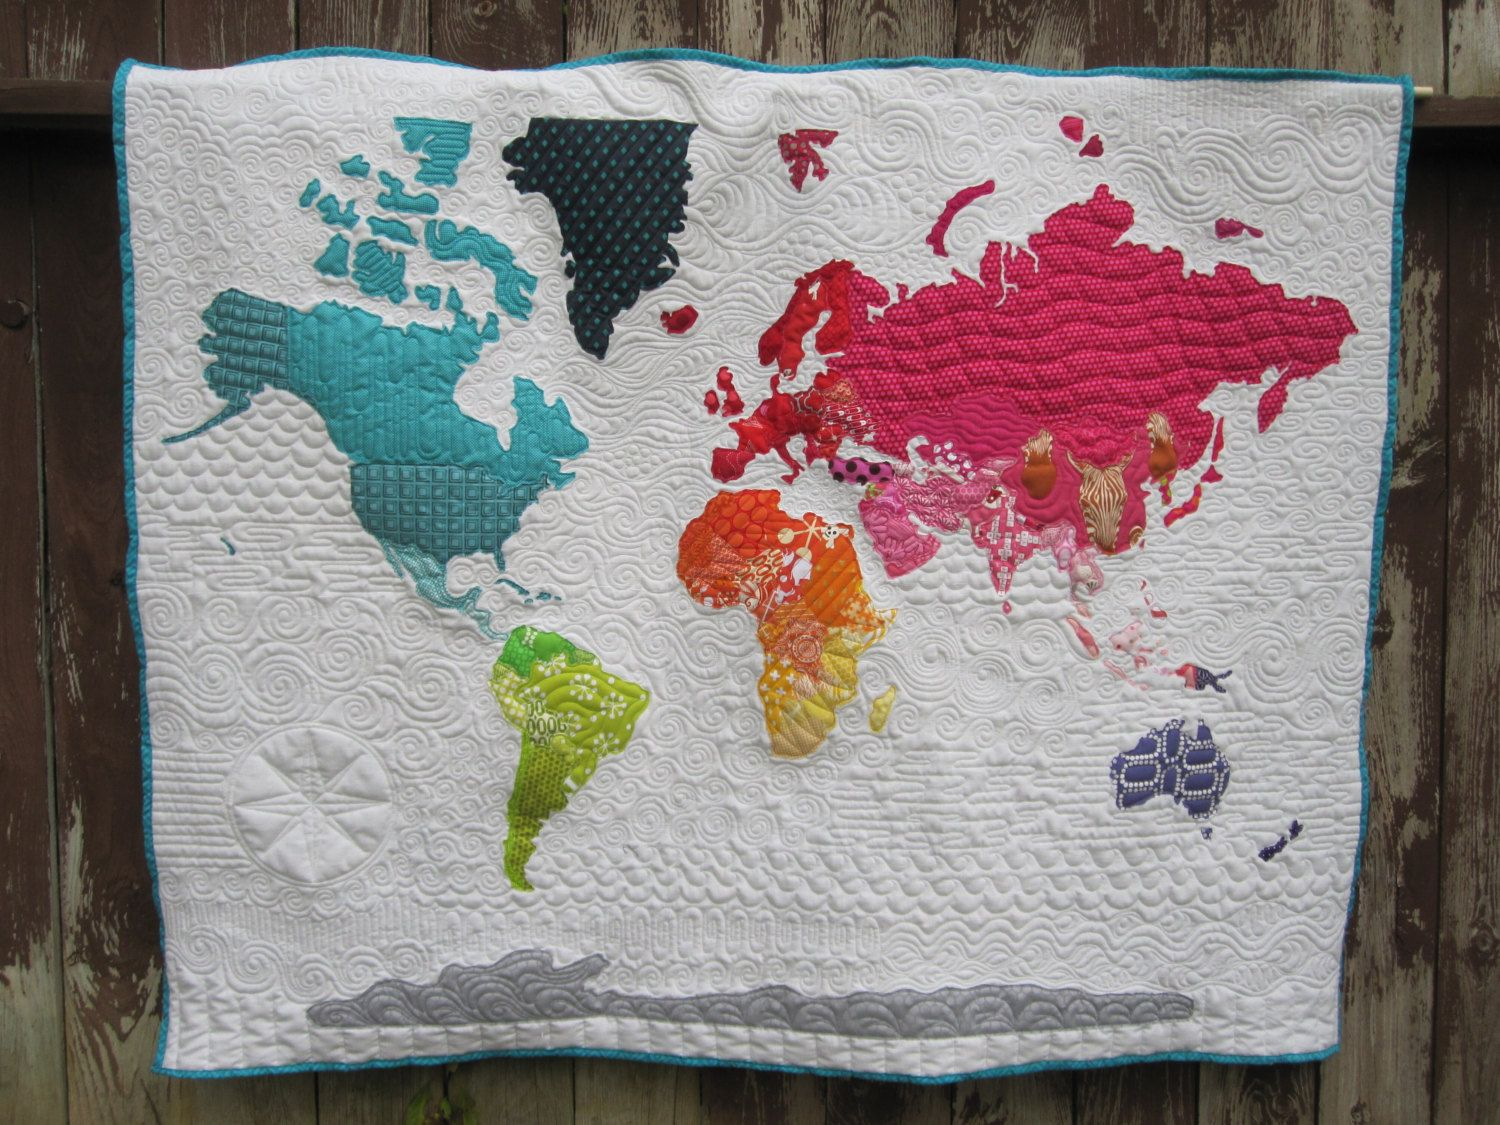 World map quilt pattern map quilt patterns and etsy world map quilt pattern gumiabroncs Image collections